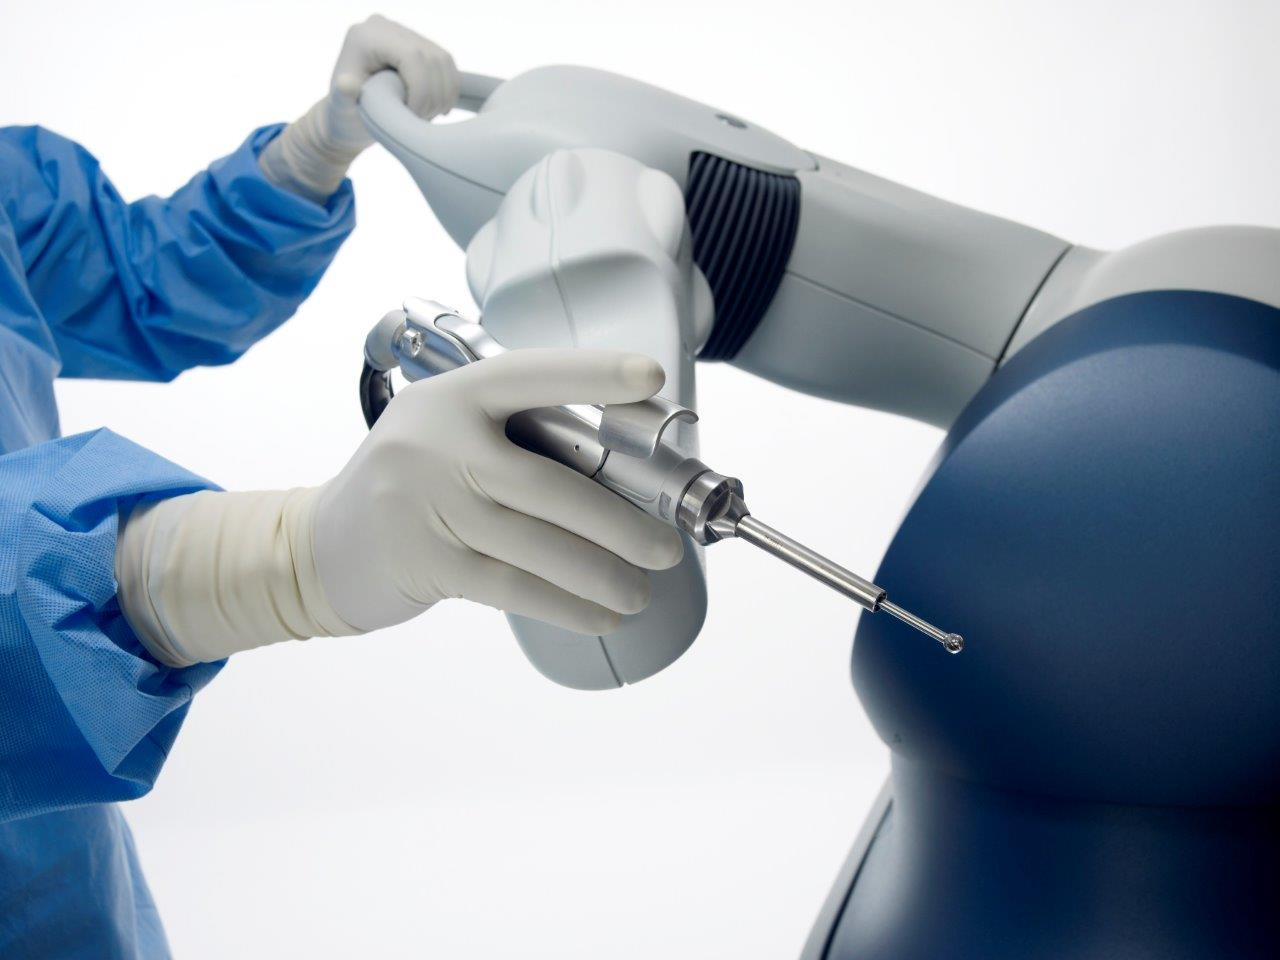 Florida Hospital Wesley Chapel Now Offering Robotic Arm